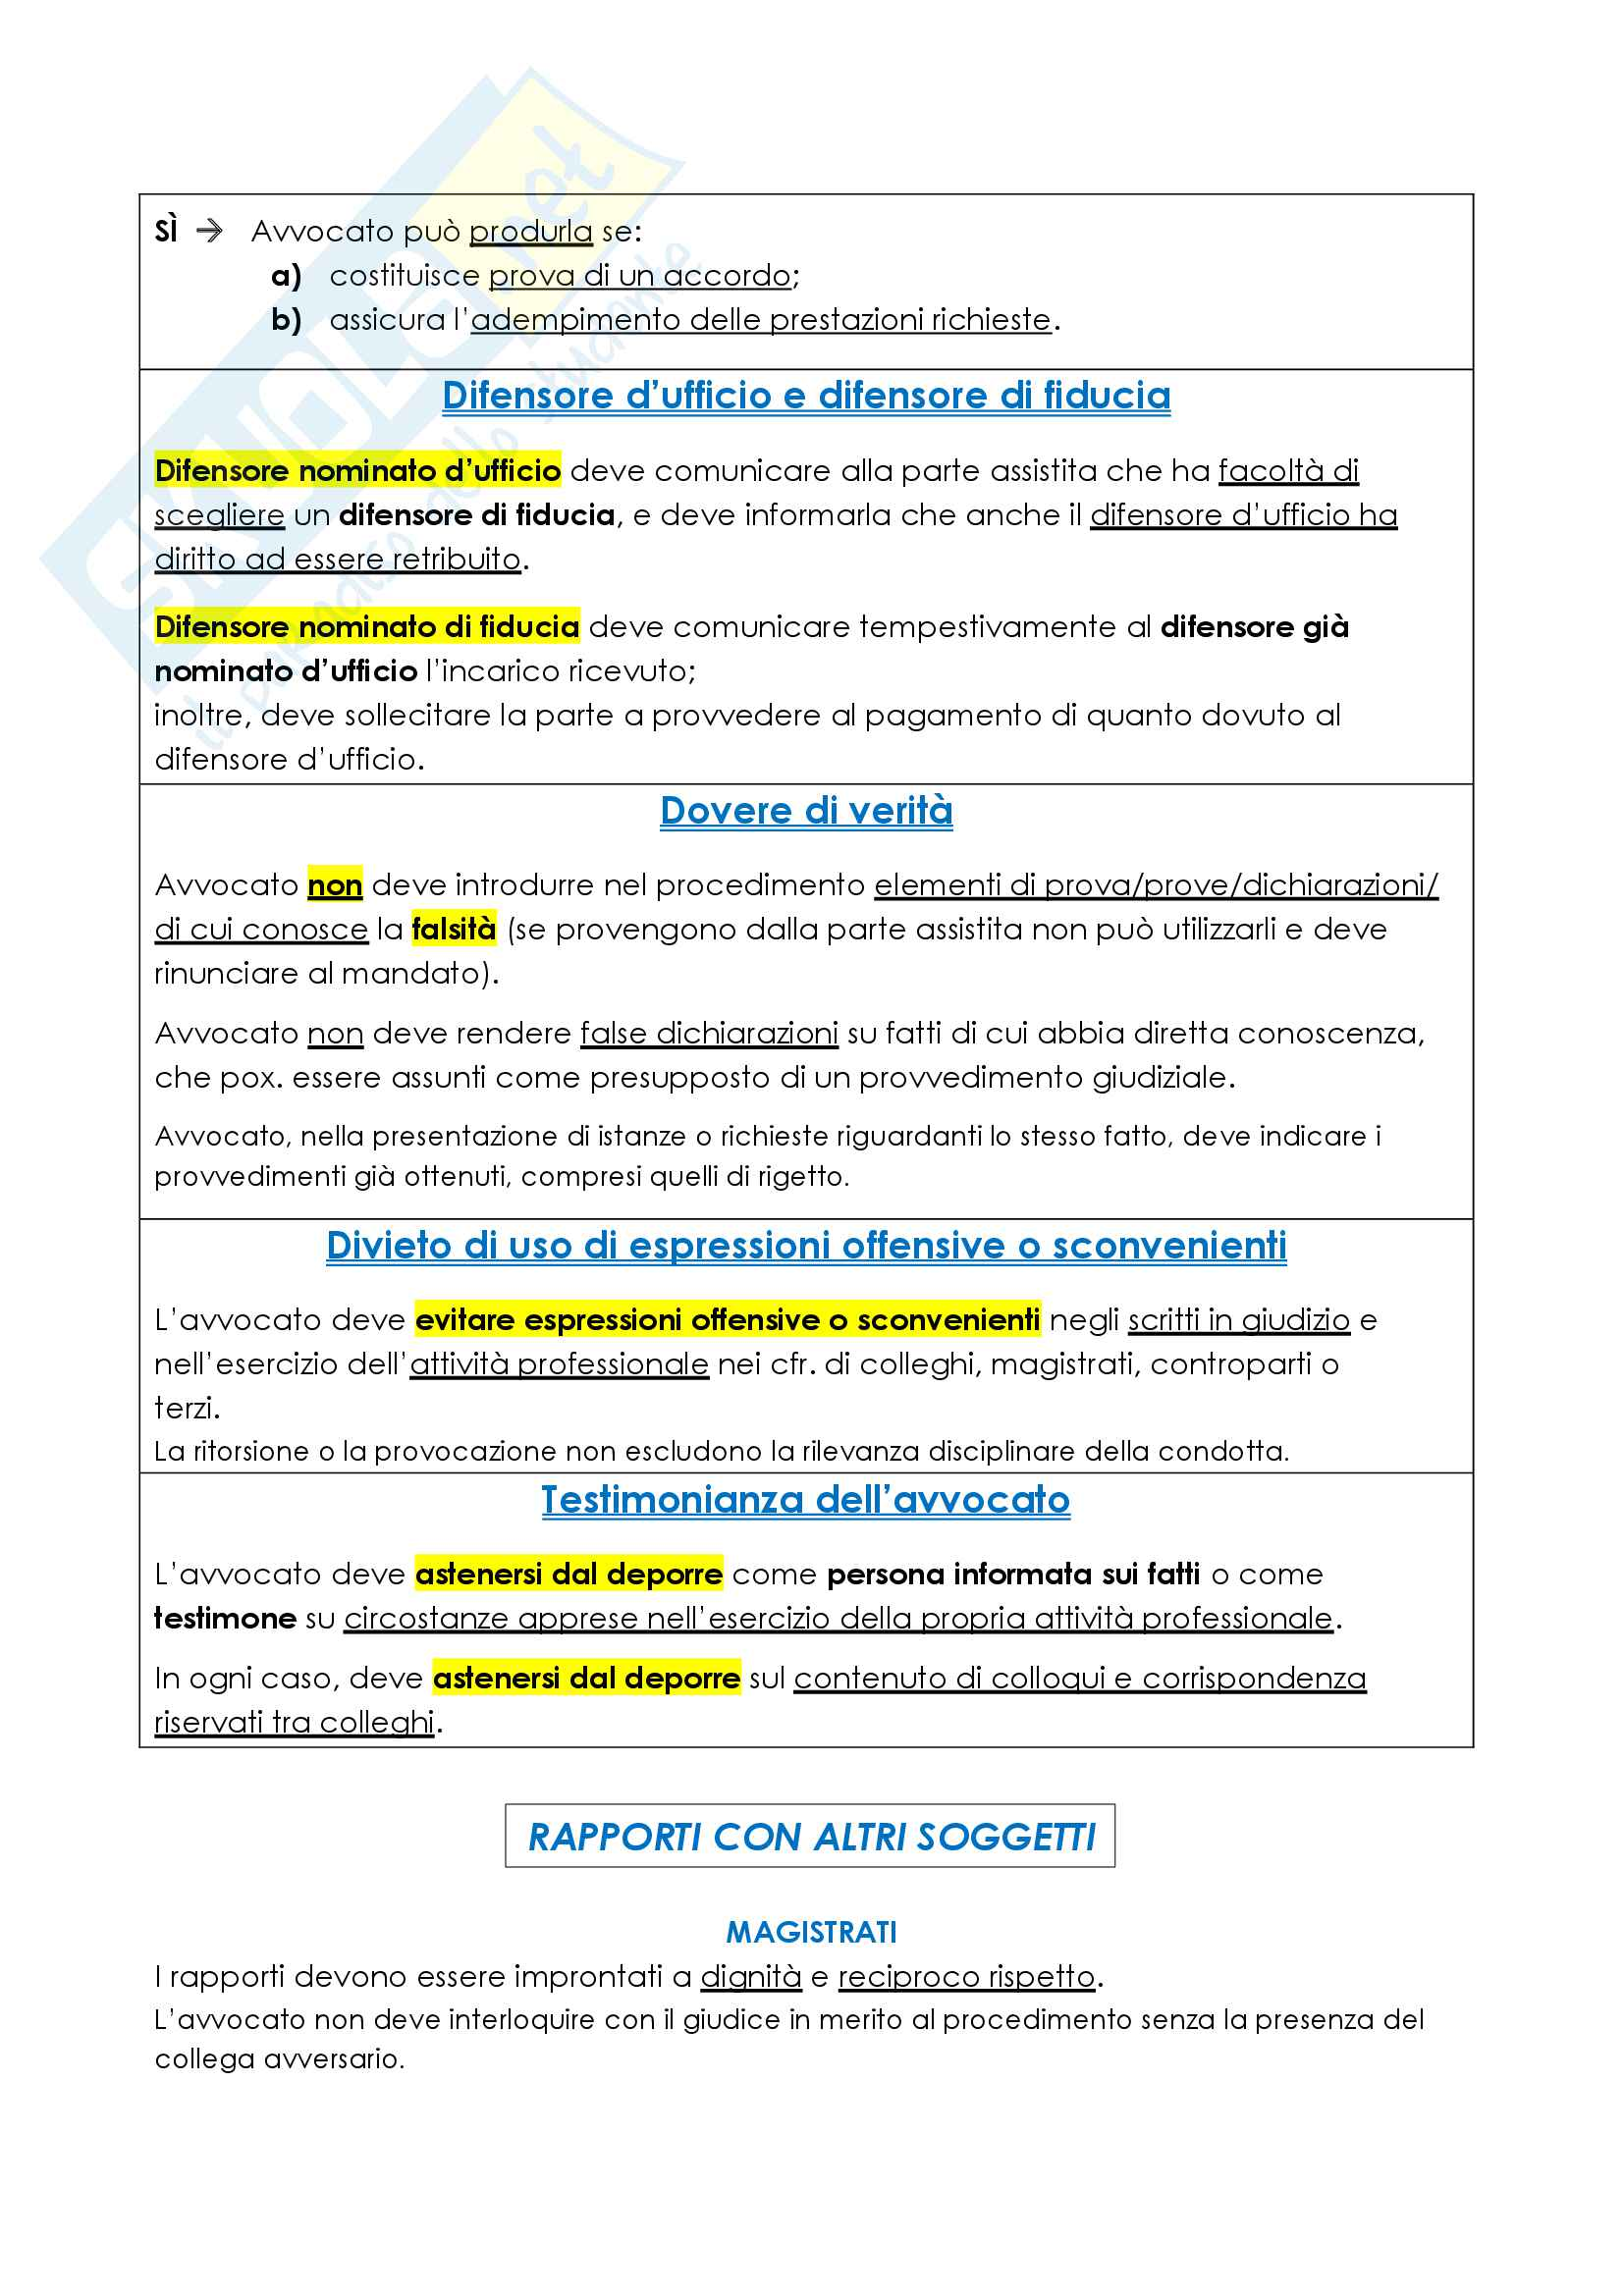 Deontologia Forense Pag. 31